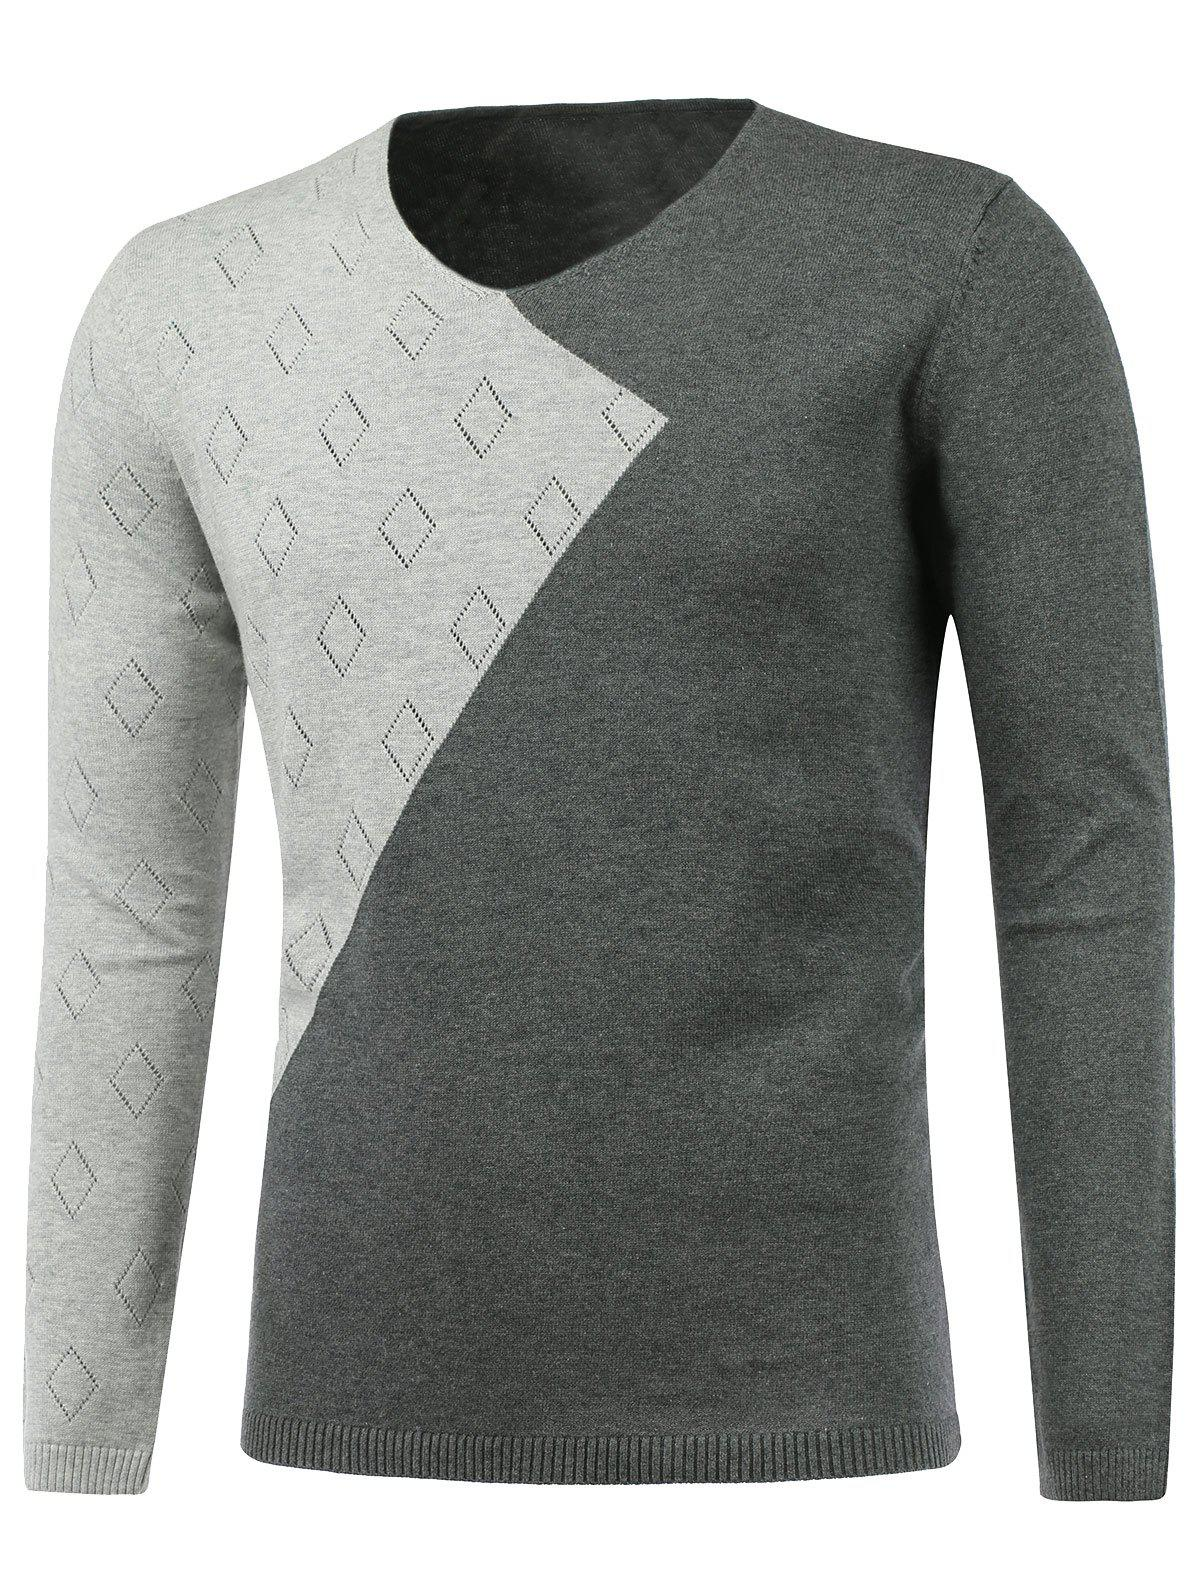 Fancy Rhombus Pattern V Neck Two Tone Sweater